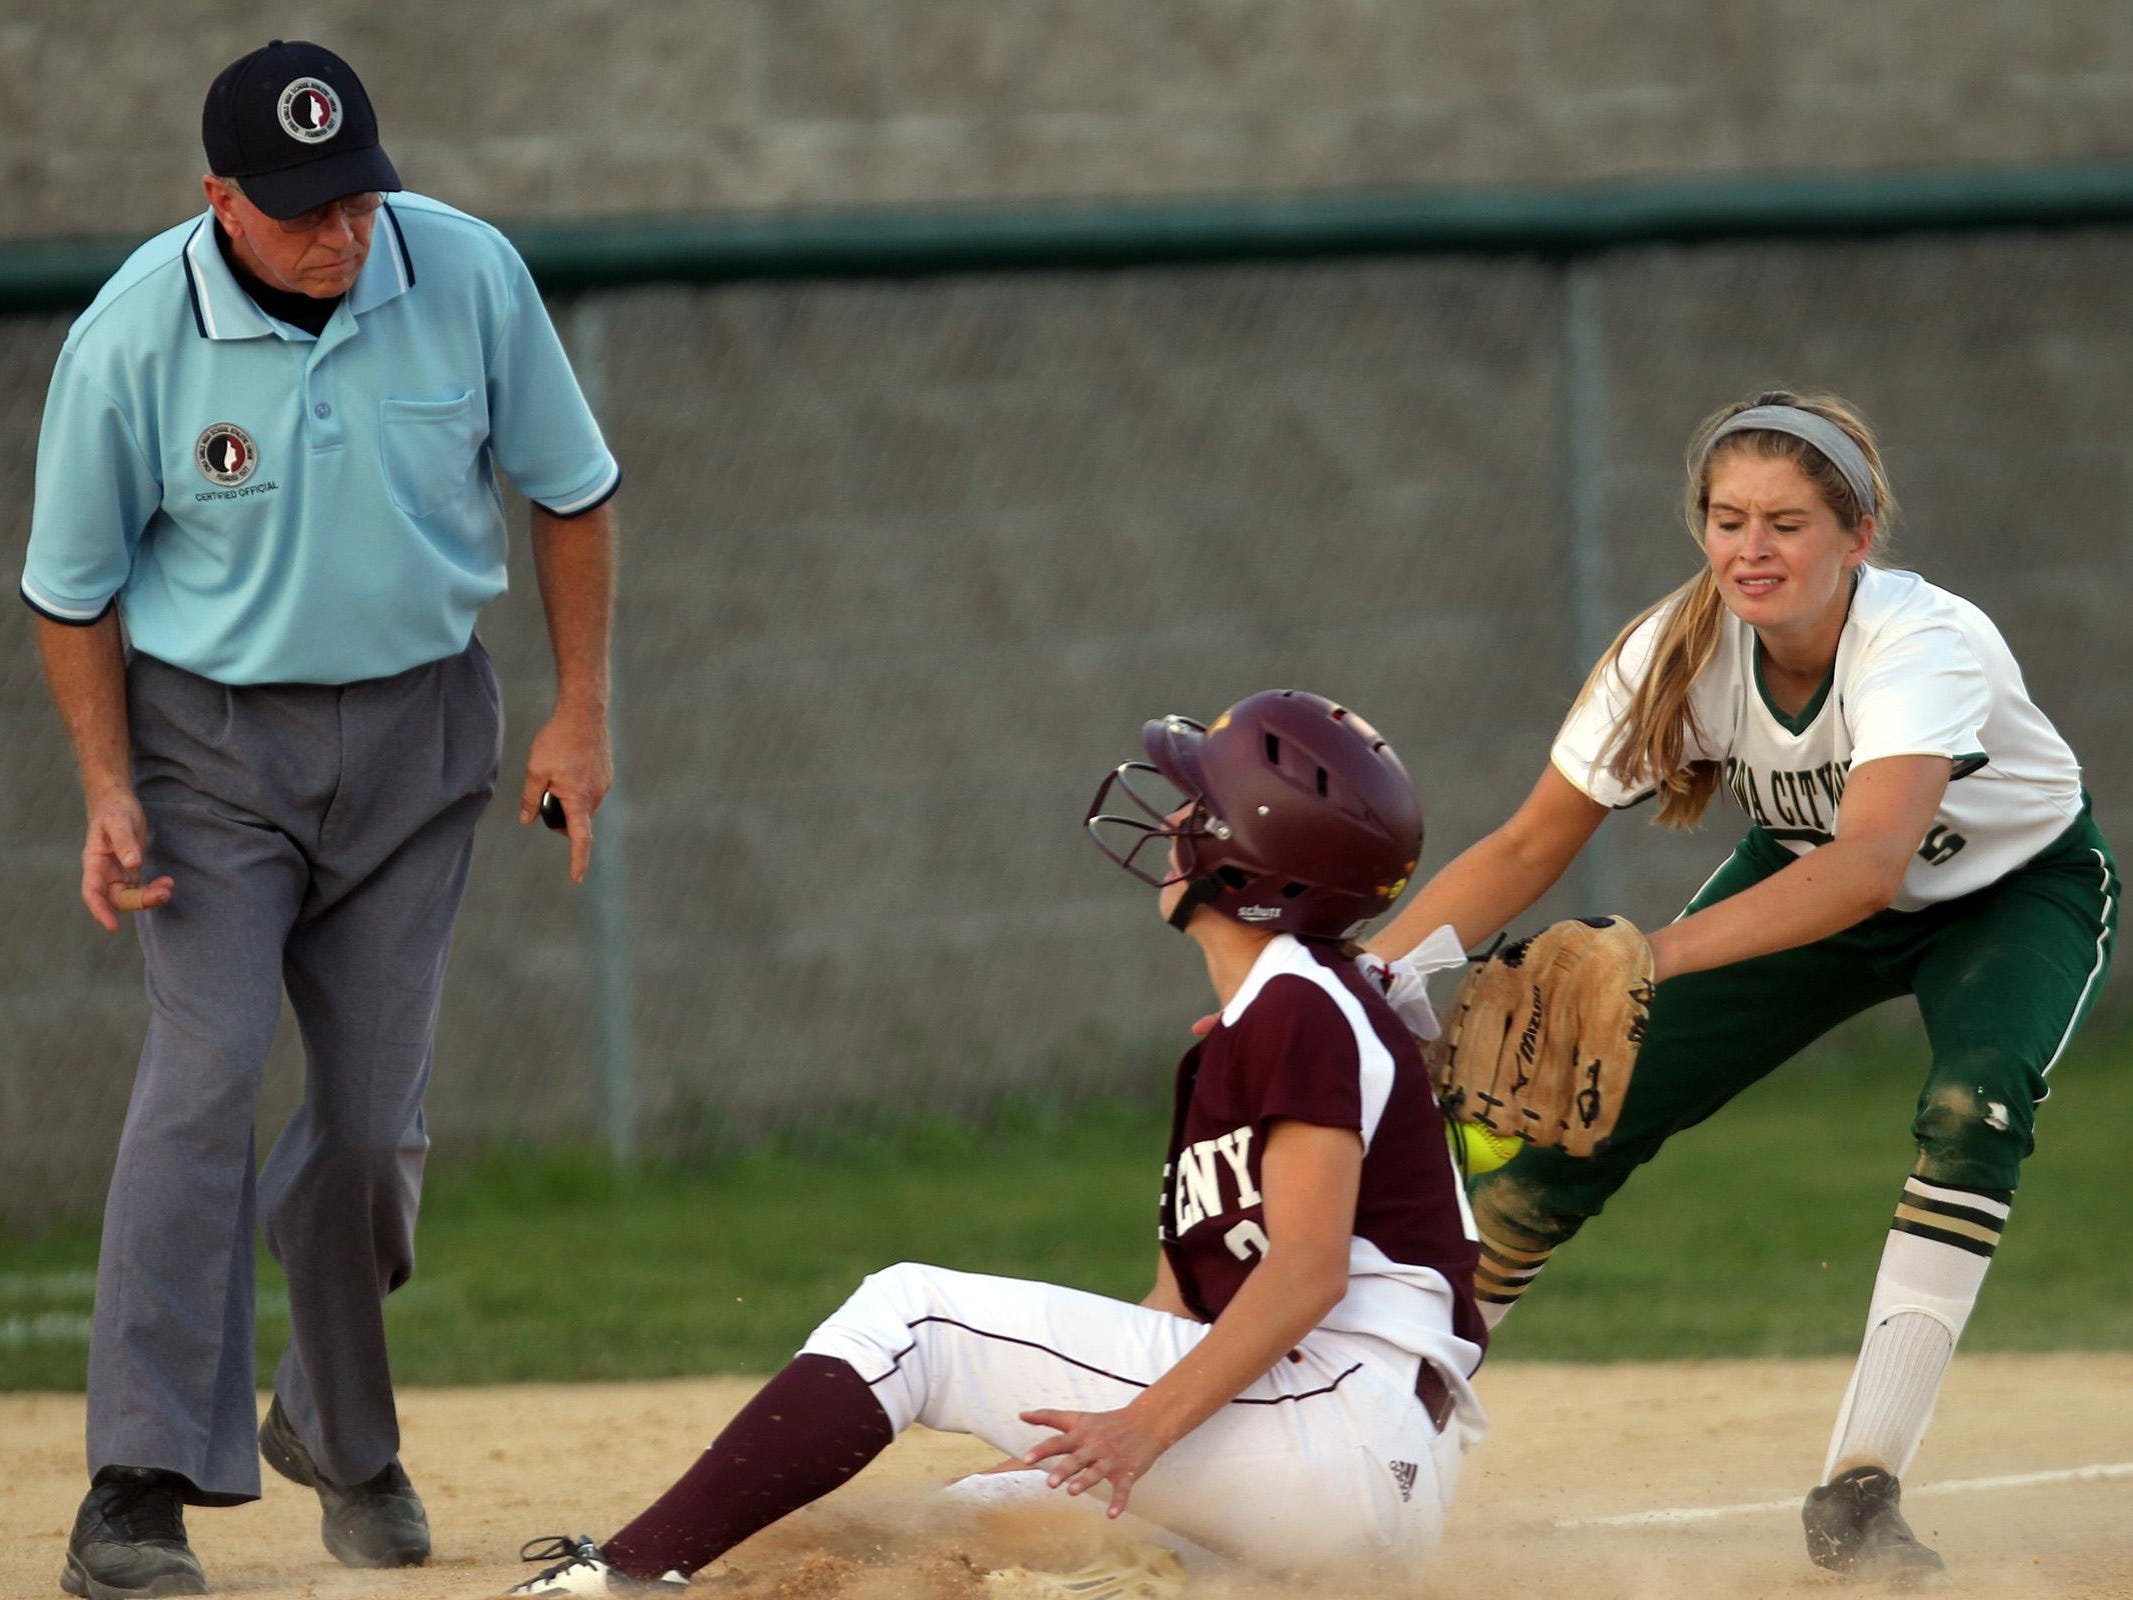 Ankeny's Melanie Rasmussen safely slides past West High's Grace Tafolla during their Class 5A regional championship game at West High on Tuesday, July 14, 2015. Ankeny won, 3-1, to head to state. David Scrivner / Iowa City Press-Citizen